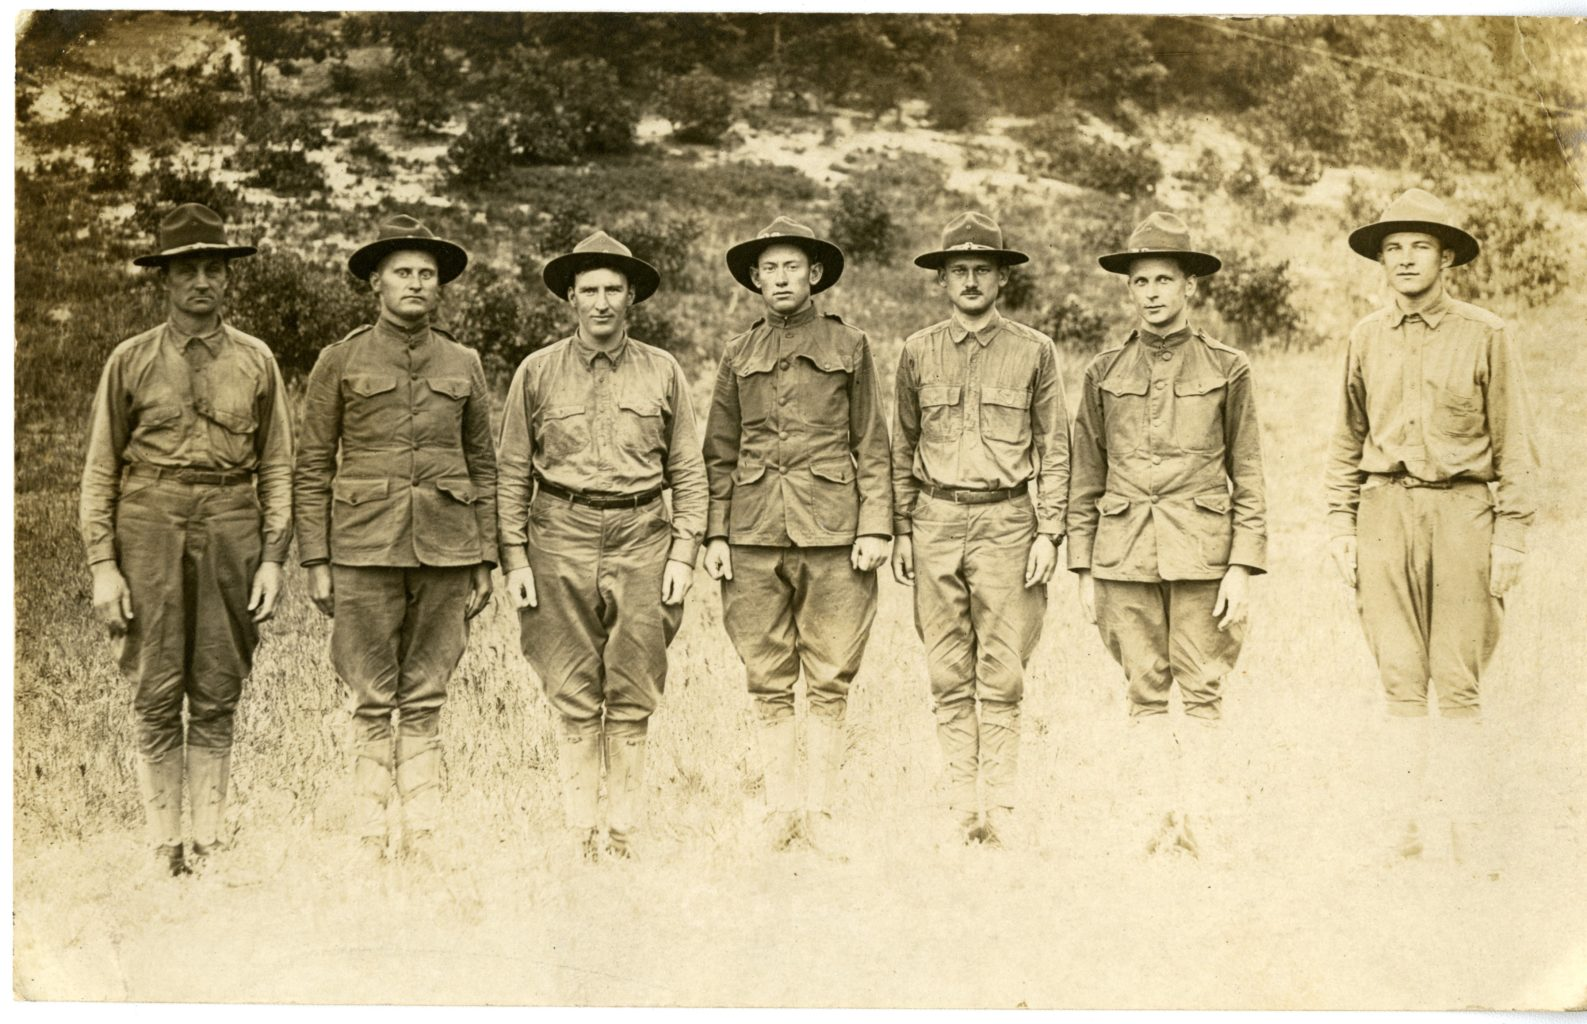 Seven men dressed in uniform stand in a line.